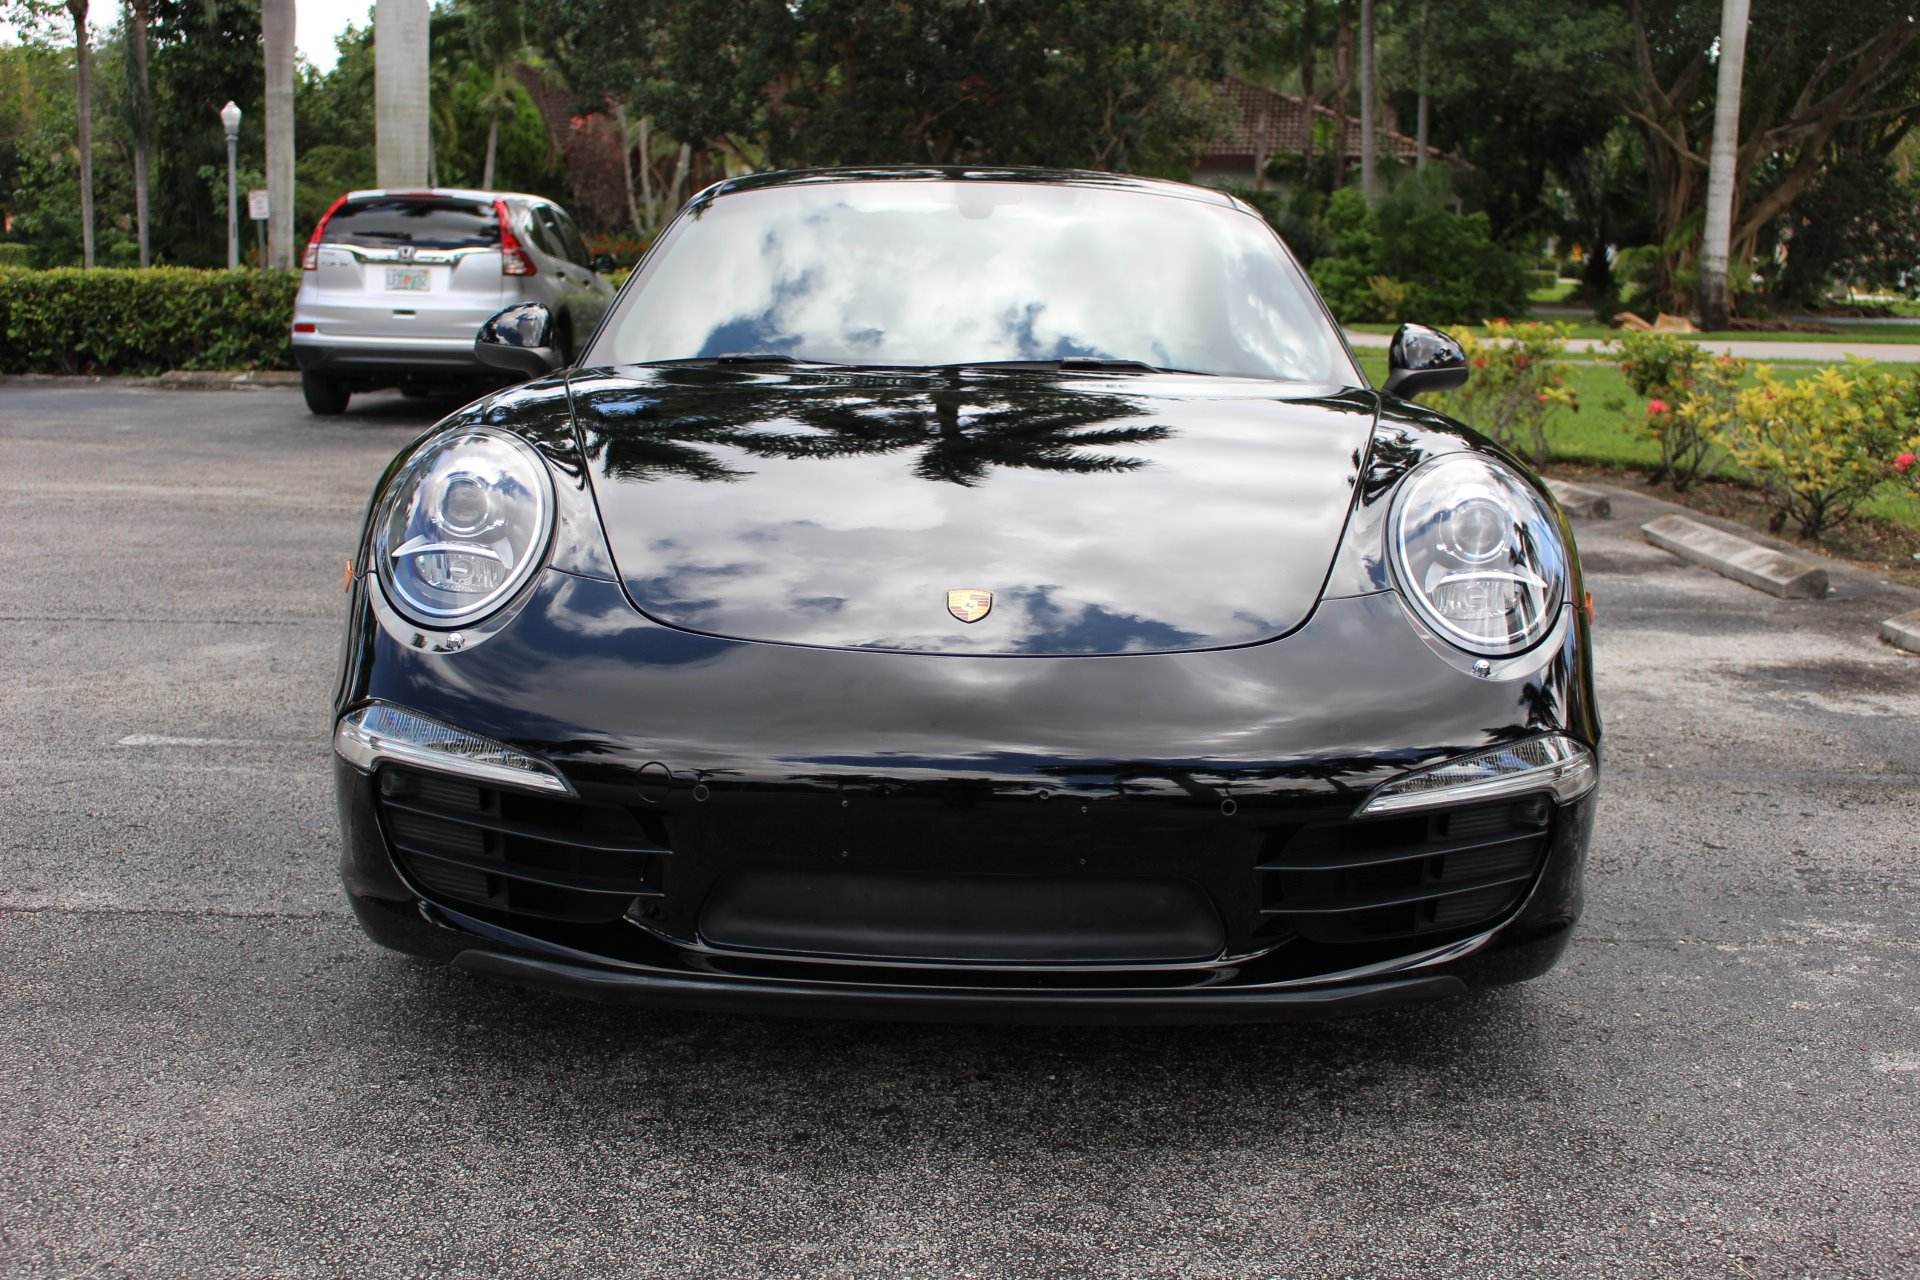 Used 2012 Porsche 911 Carrera for sale Sold at The Gables Sports Cars in Miami FL 33146 4